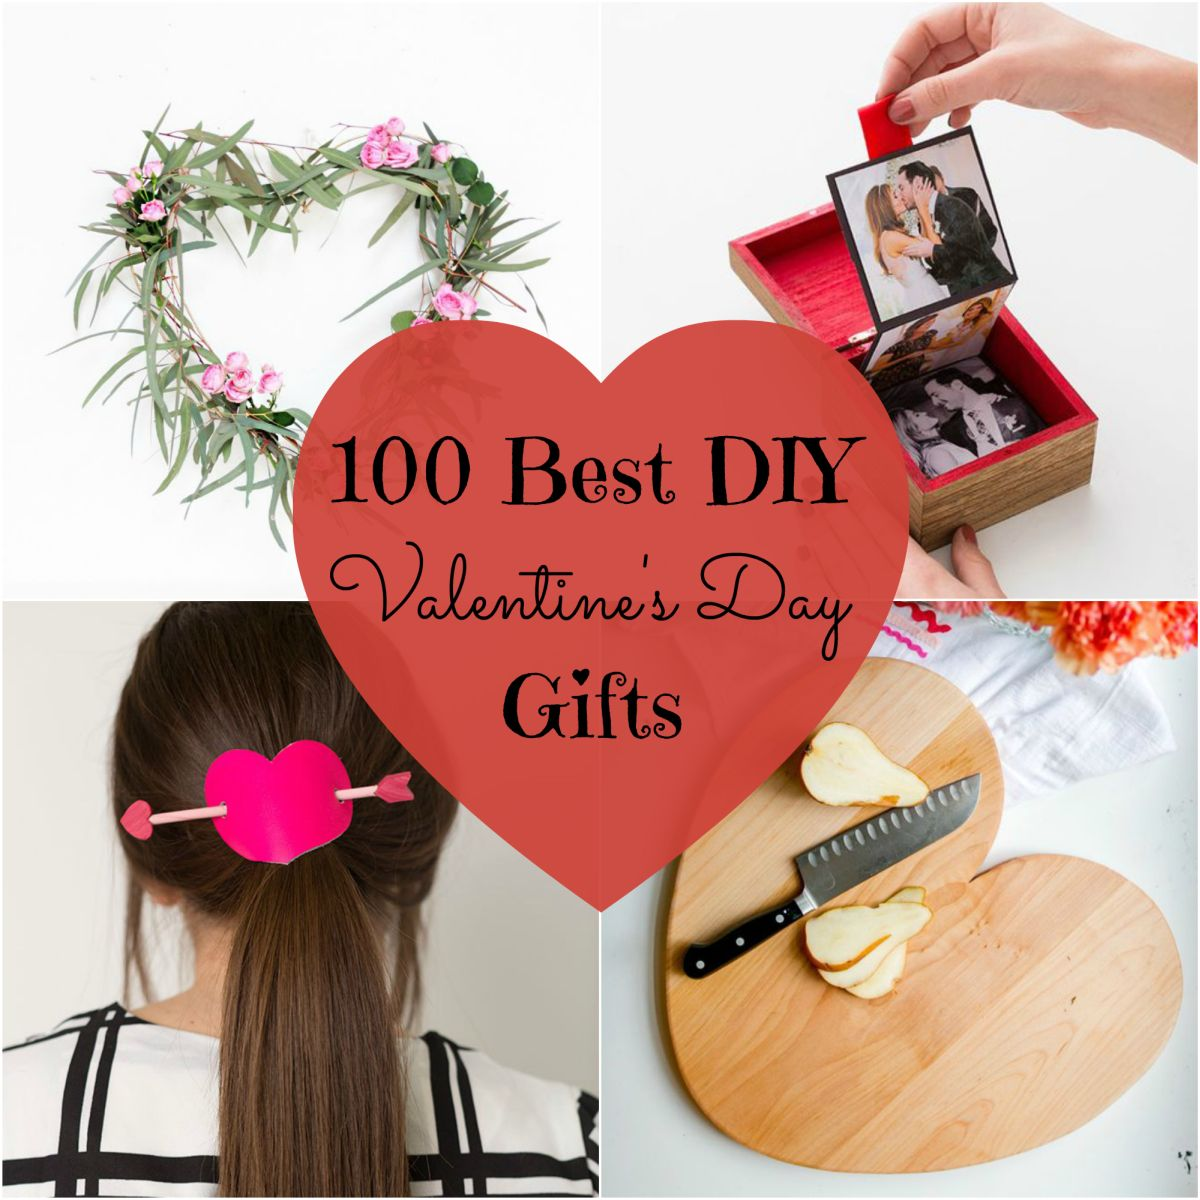 100 Best DIY Valentine's Day Gifts